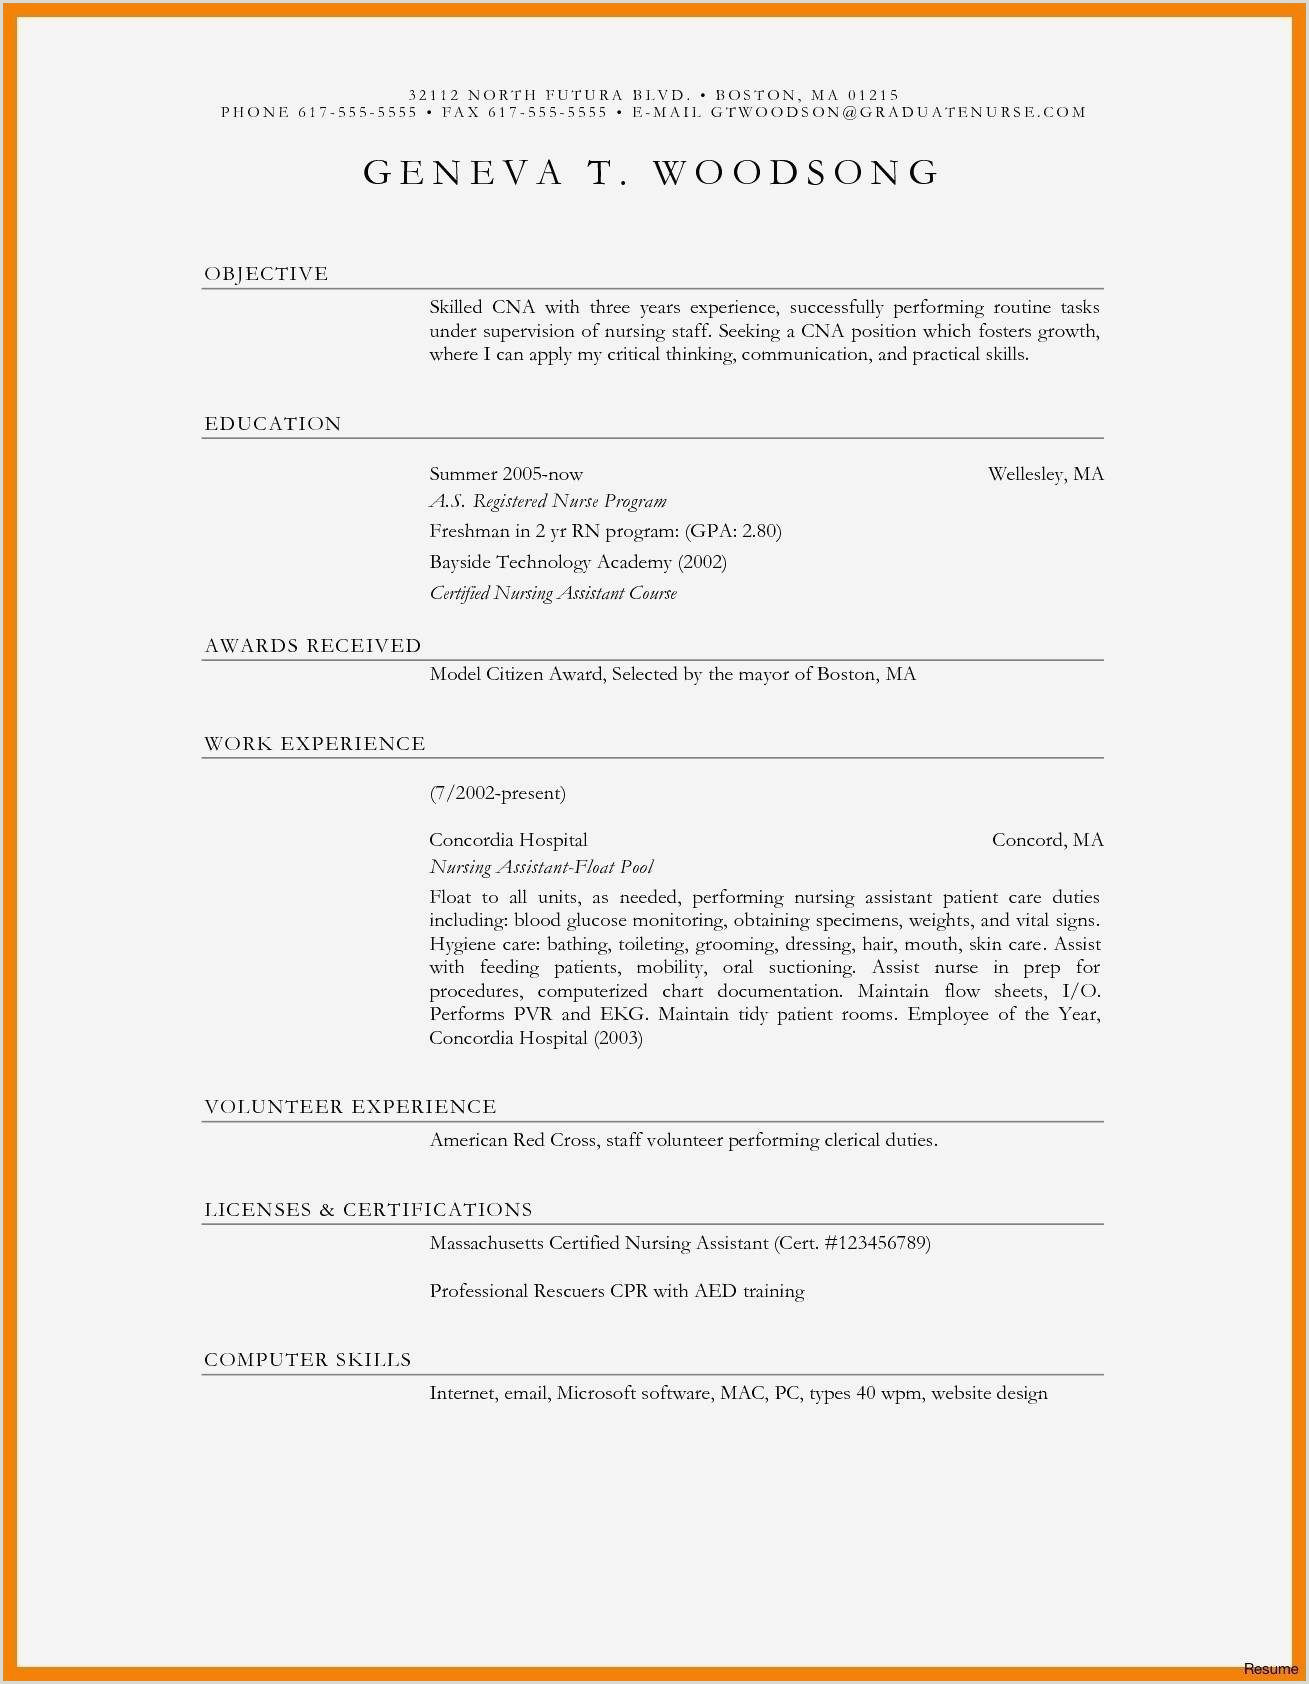 Blank Professional Cv format Cv Libre Fice Le Luxe New Blank Resume format Resume